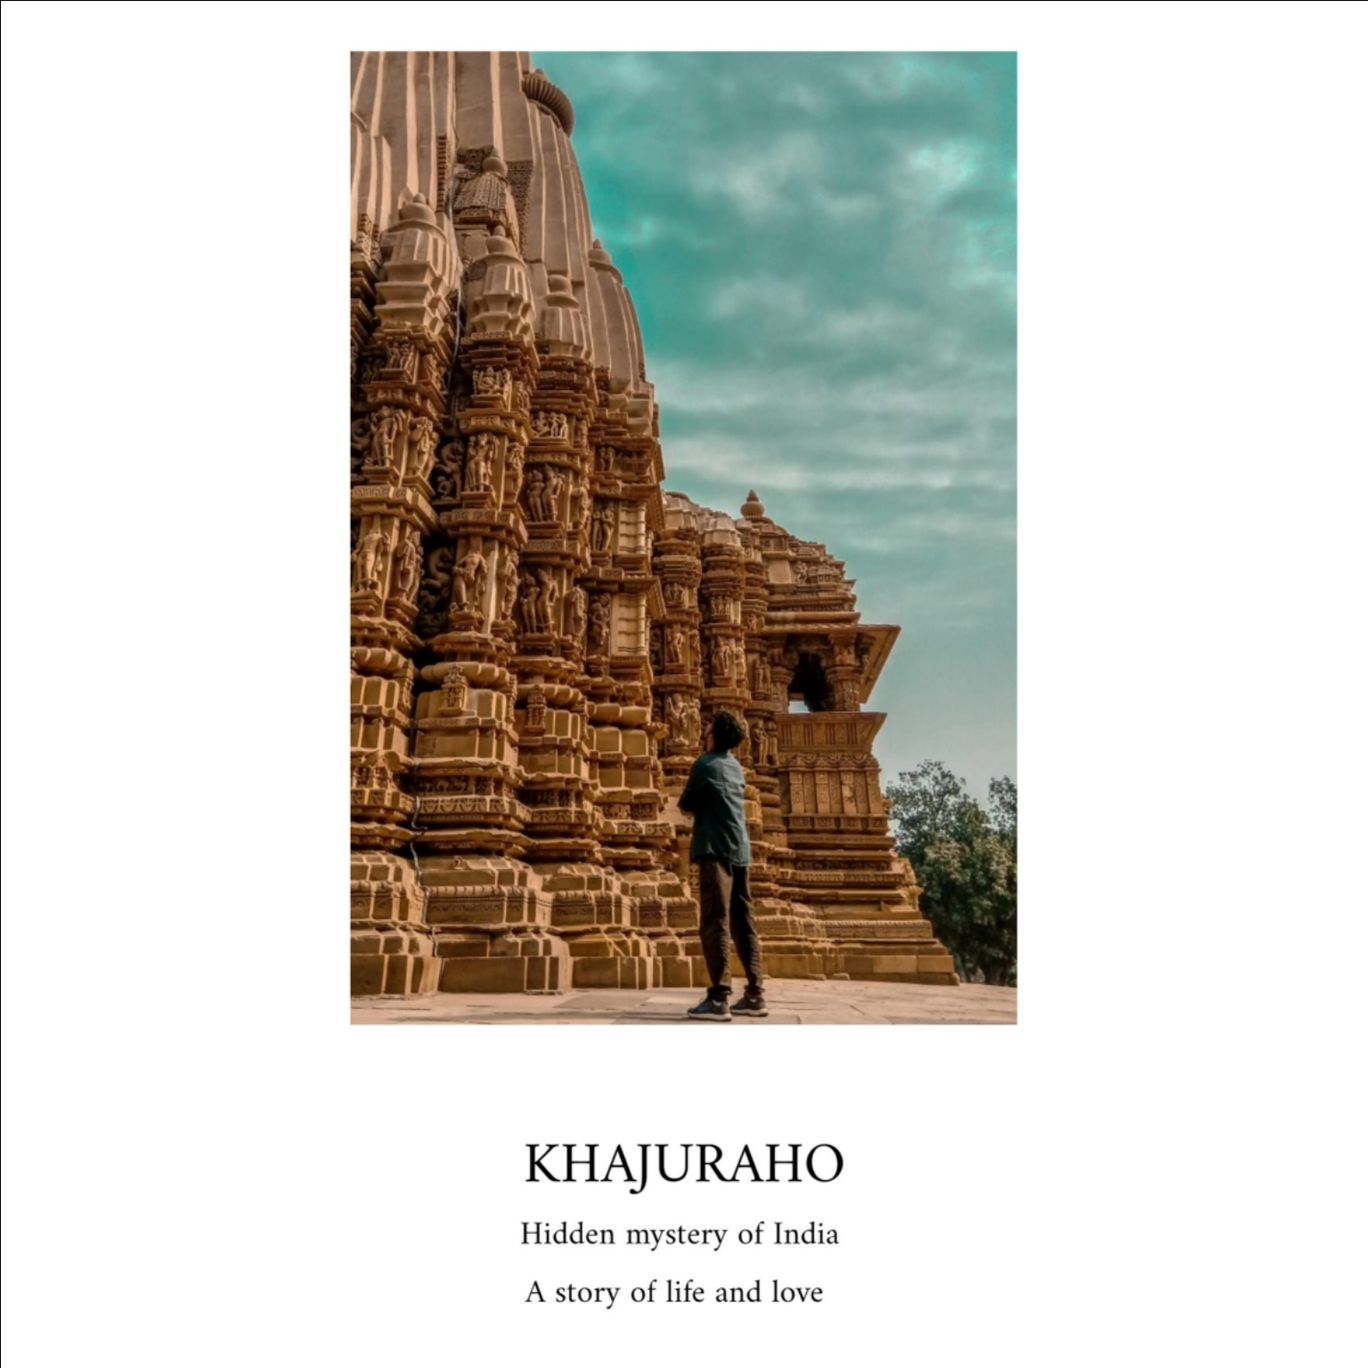 Photo of Khajuraho By prayag patel